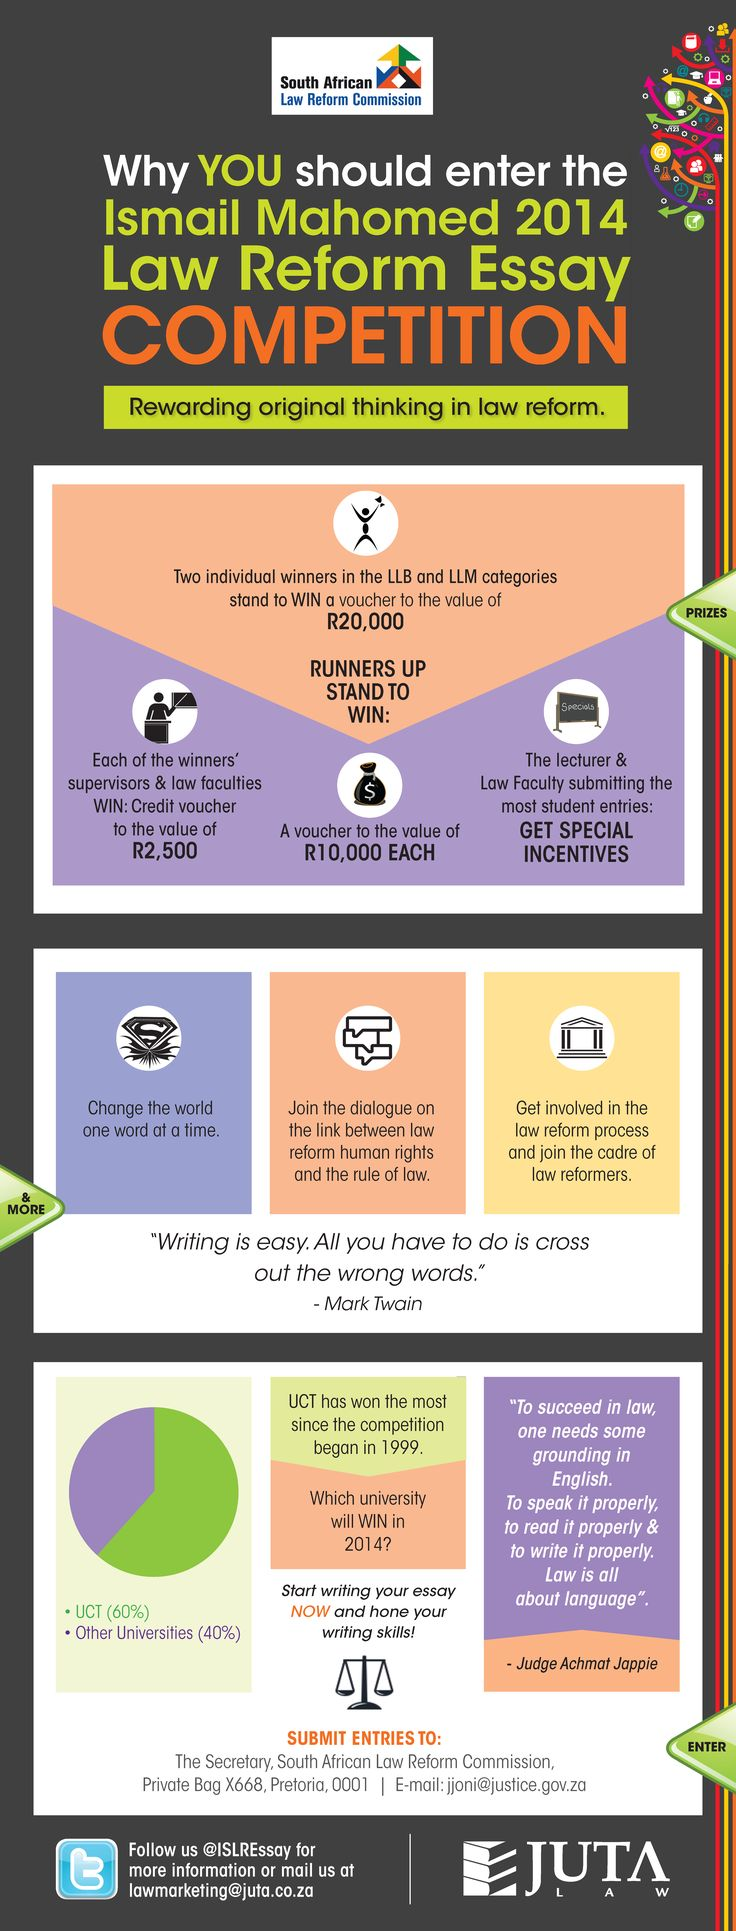 best images about legal essay writing guidelines an infographic on everything you need to know about the ismail mahomed law reform essay competition